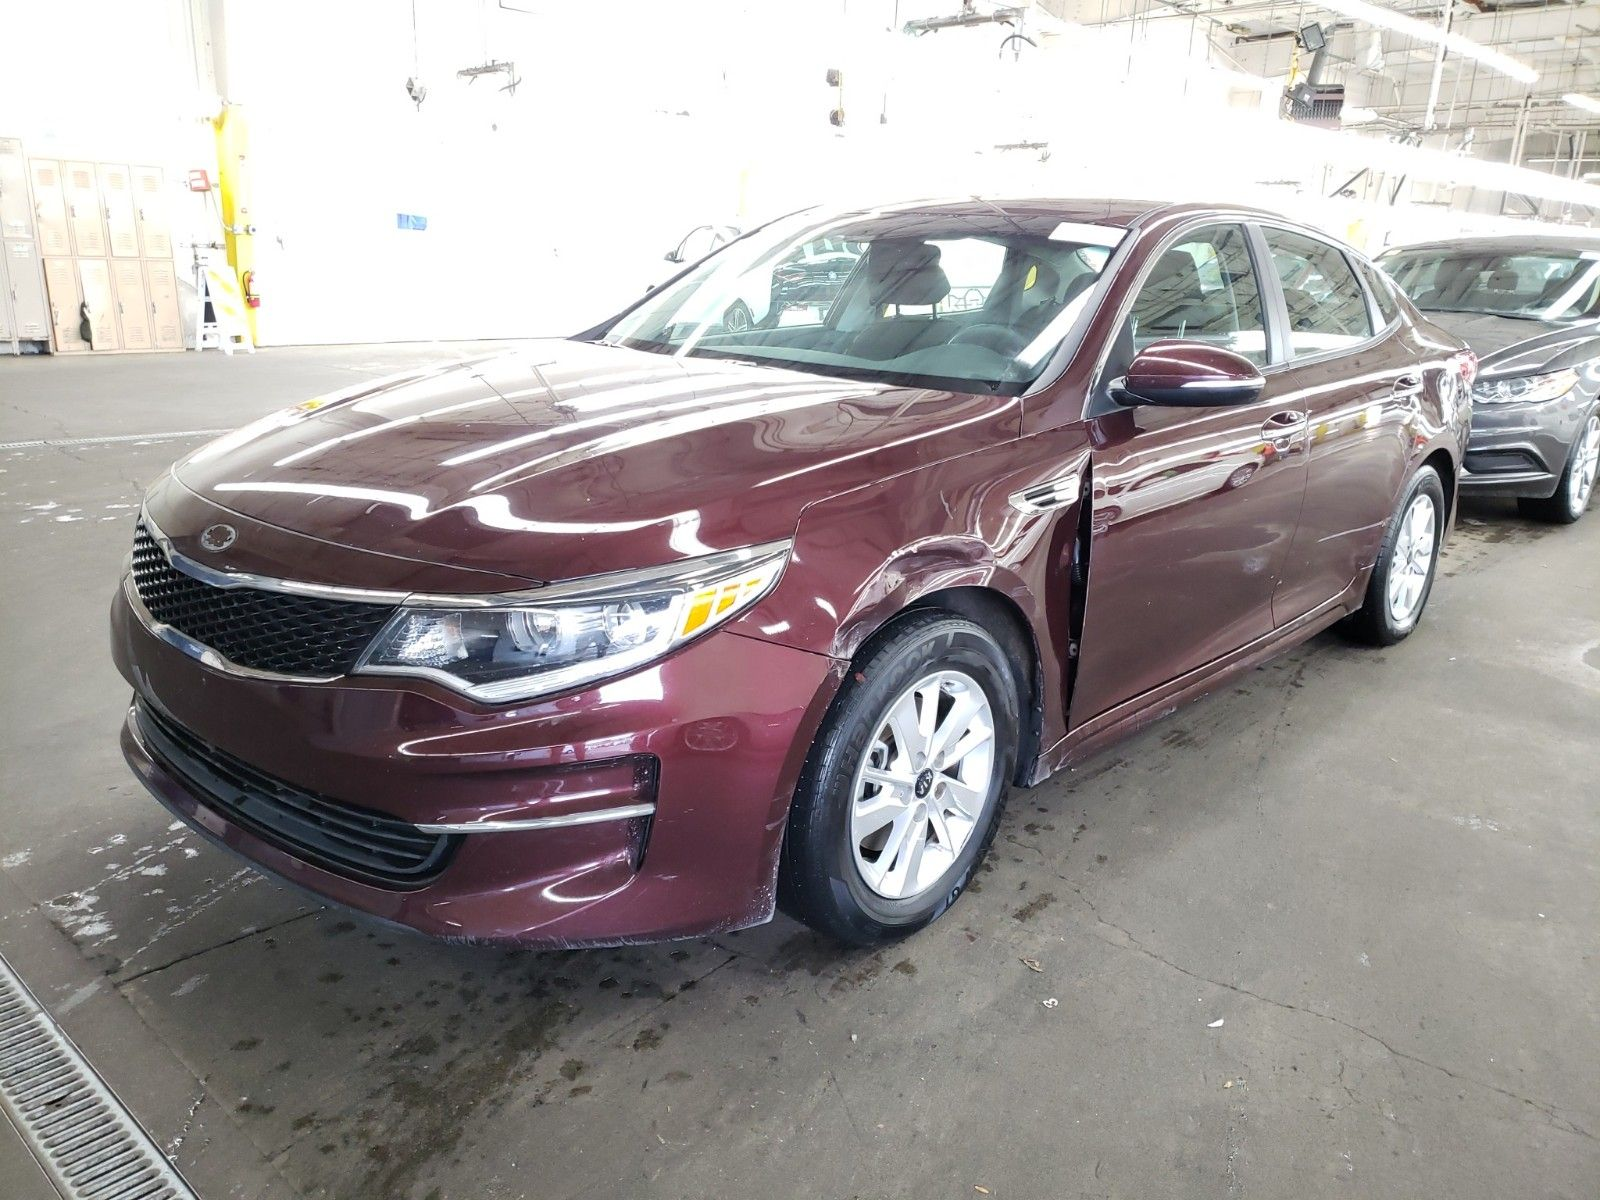 2018 Kia Optima 2.4. Lot 99912875870 Vin 5XXGT4L31JG208438